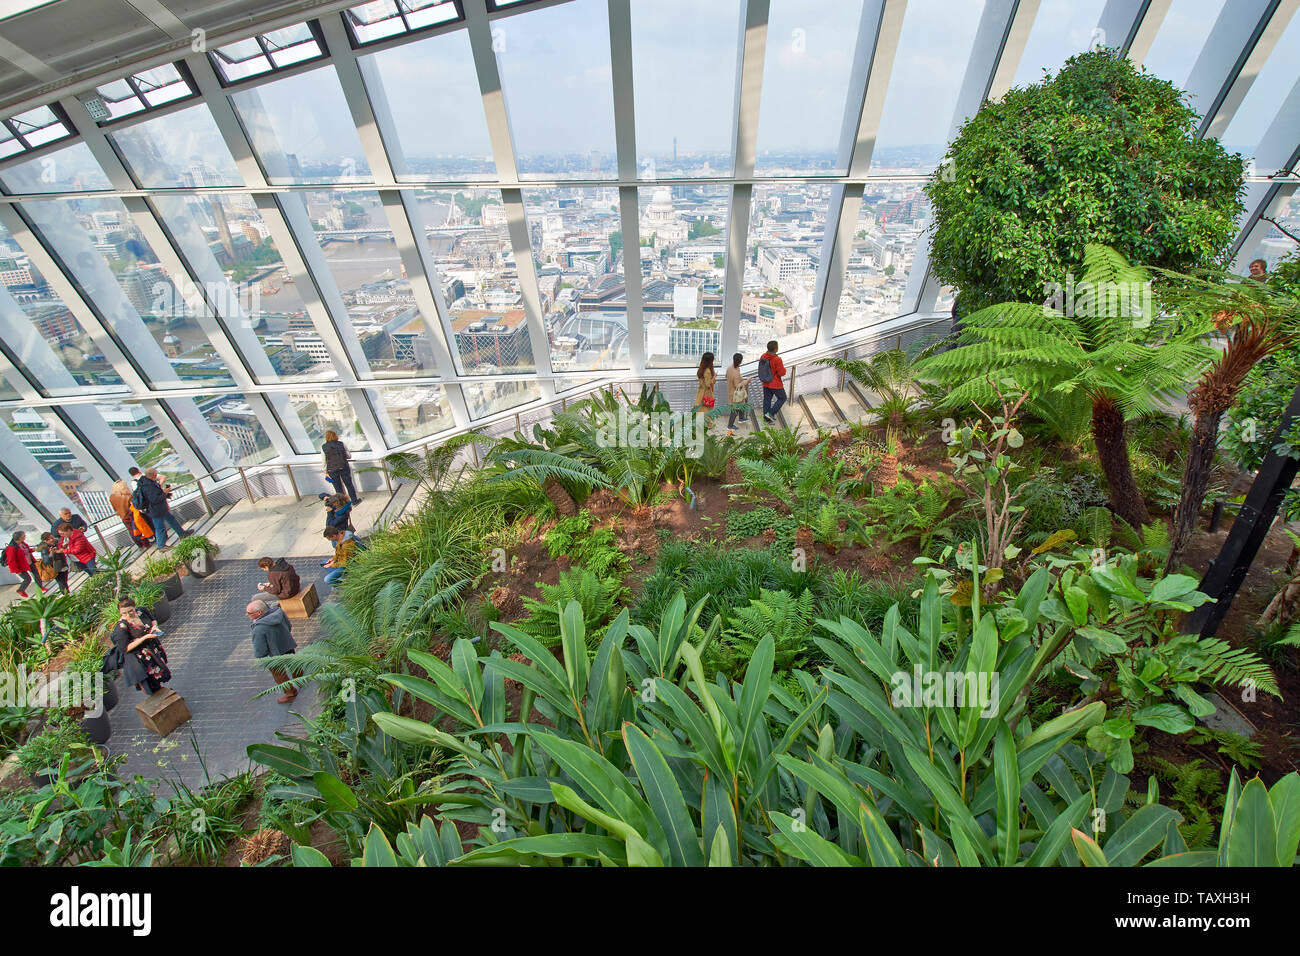 LONDON 20 FENCHURCH STREET THE WALKIE TALKIE SKYSCRAPER THE SKY GARDEN AND PLANTS WITH PEOPLE ENJOYING THE VIEW OVER THE RIVER THAMES AND ST PAULS ARE - Stock Image